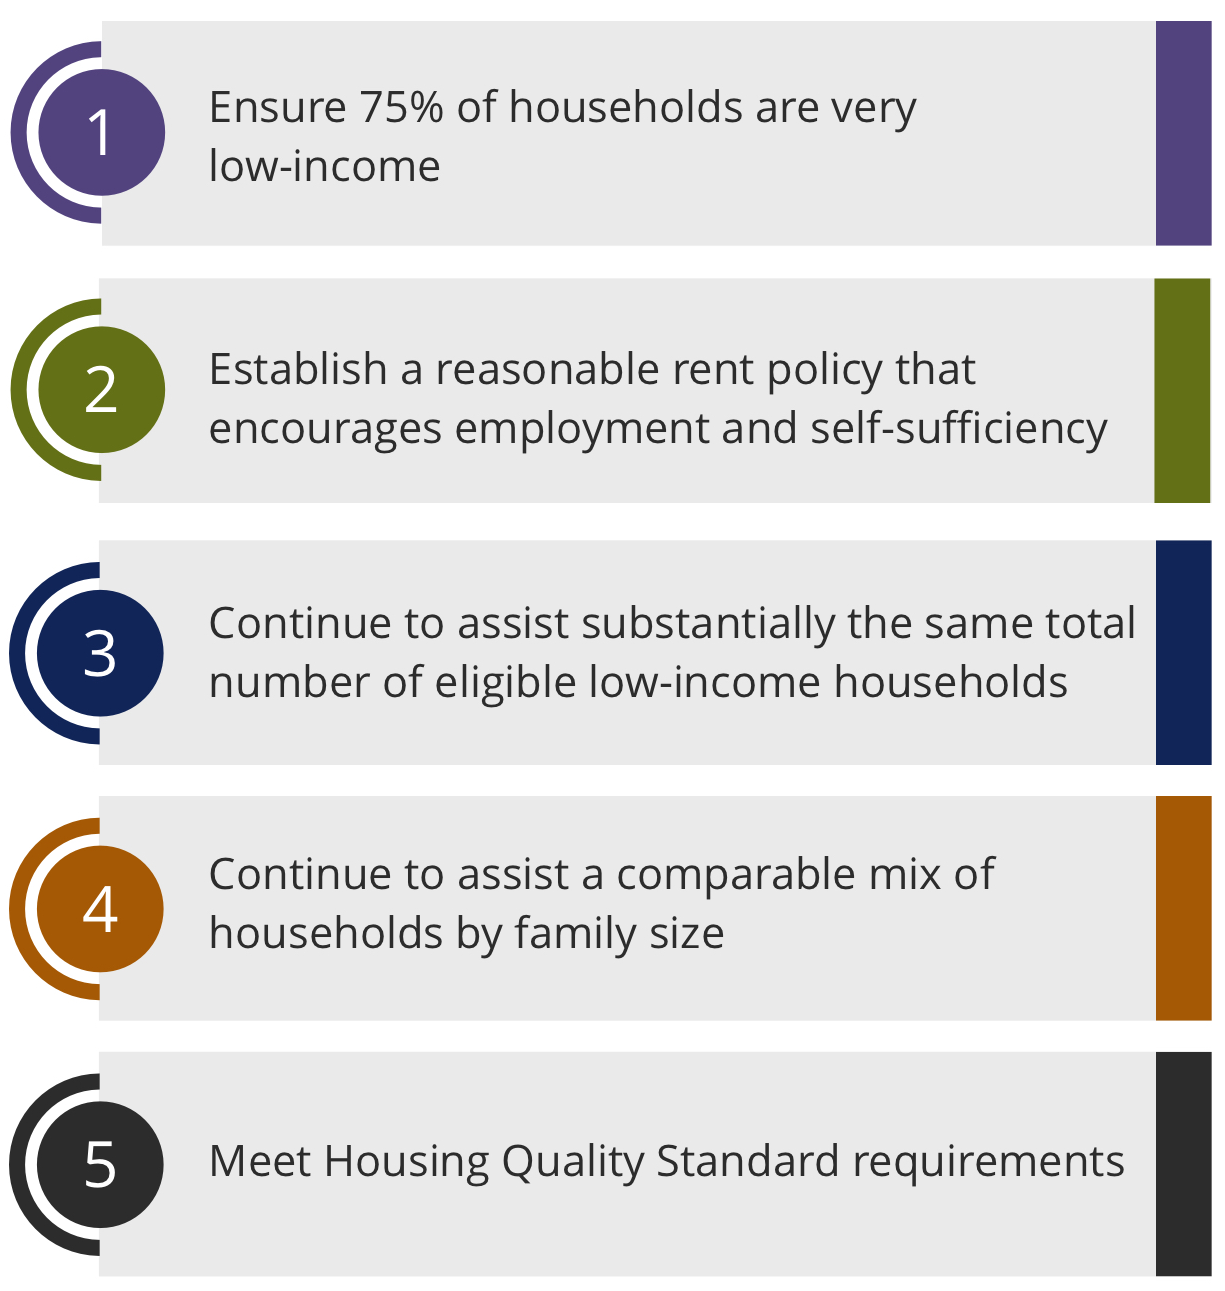 Requirement 1: Ensure 75% of households are very low-income. Requirement 2: Establish a reasonable rent policy that encourages employment and self-sufficiency. Requirement 3: Continue to assist substantially the same total number of eligible low-income households. Requirement 4: Continue to assist a comparable mix of households by family size. Requirement 5: Meet Housing Quality Standard requirements.